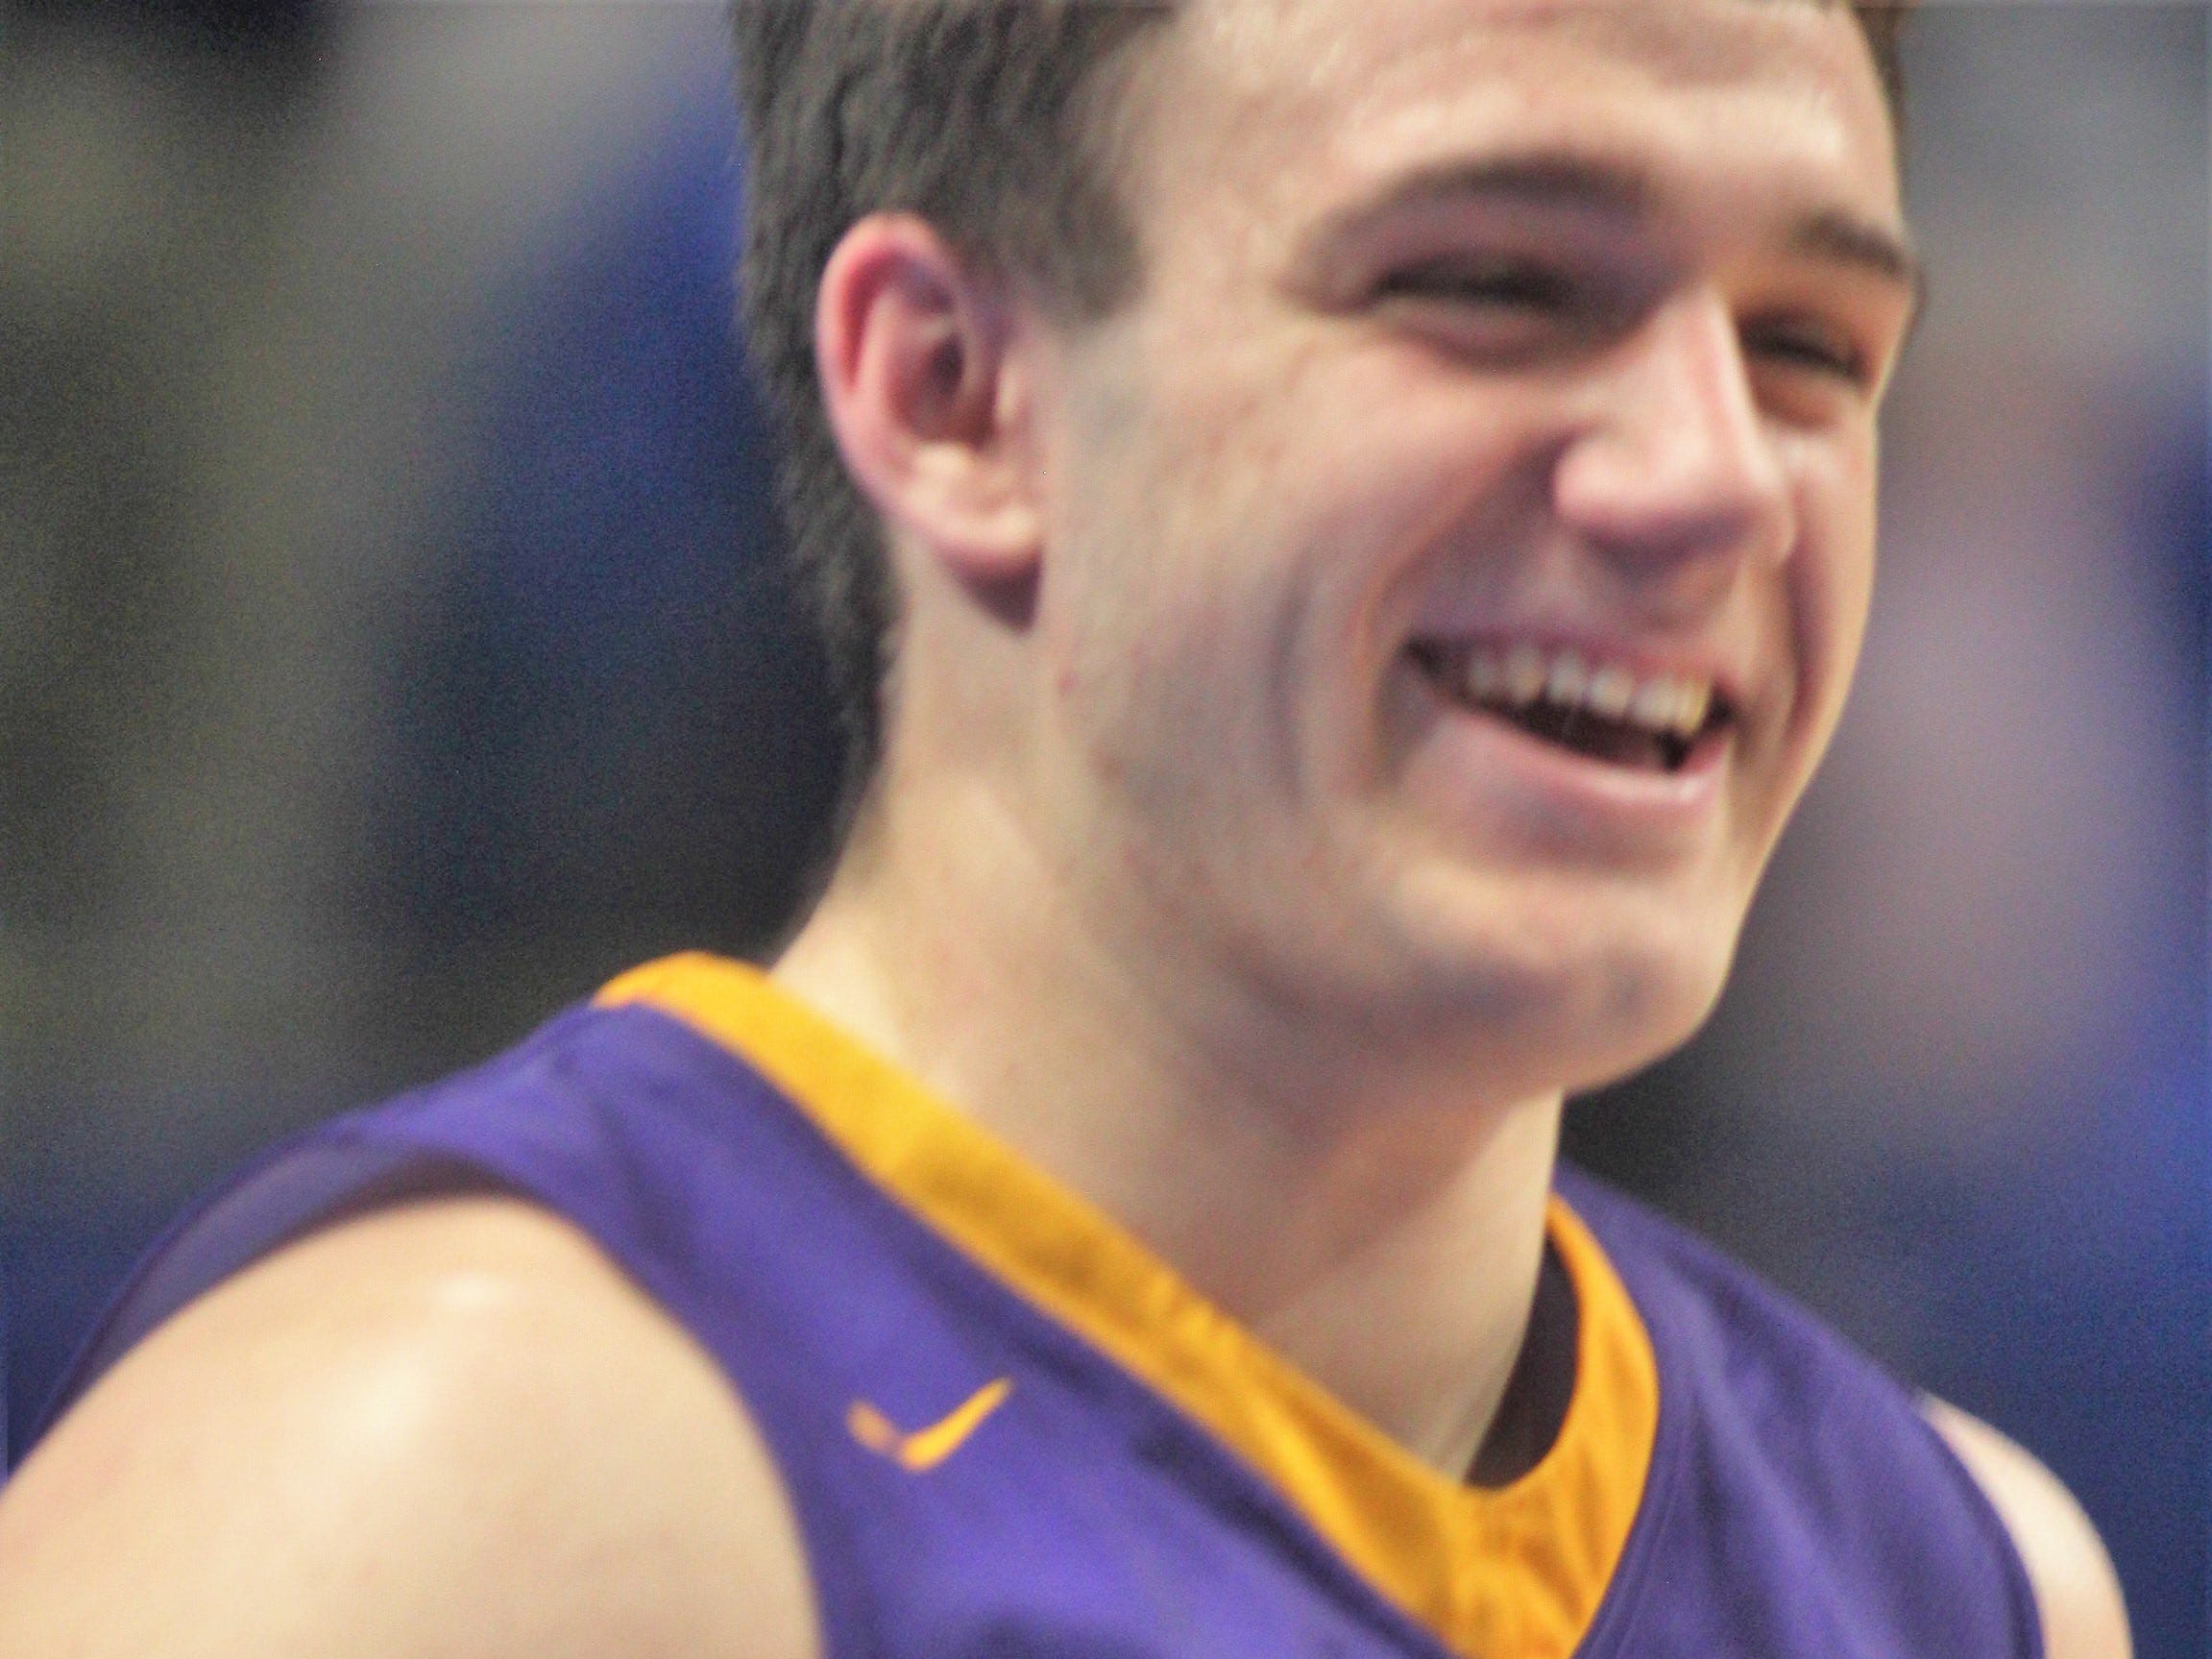 Campbell County senior Tanner Lawrence is all smiles after the win, as Campbell County defeated Walton-Verona 49-42 in the state quarterfinals of the Whitaker Bank/KHSAA Boys Basketball Sweet 16 March 8, 2019, at Rupp Arena.